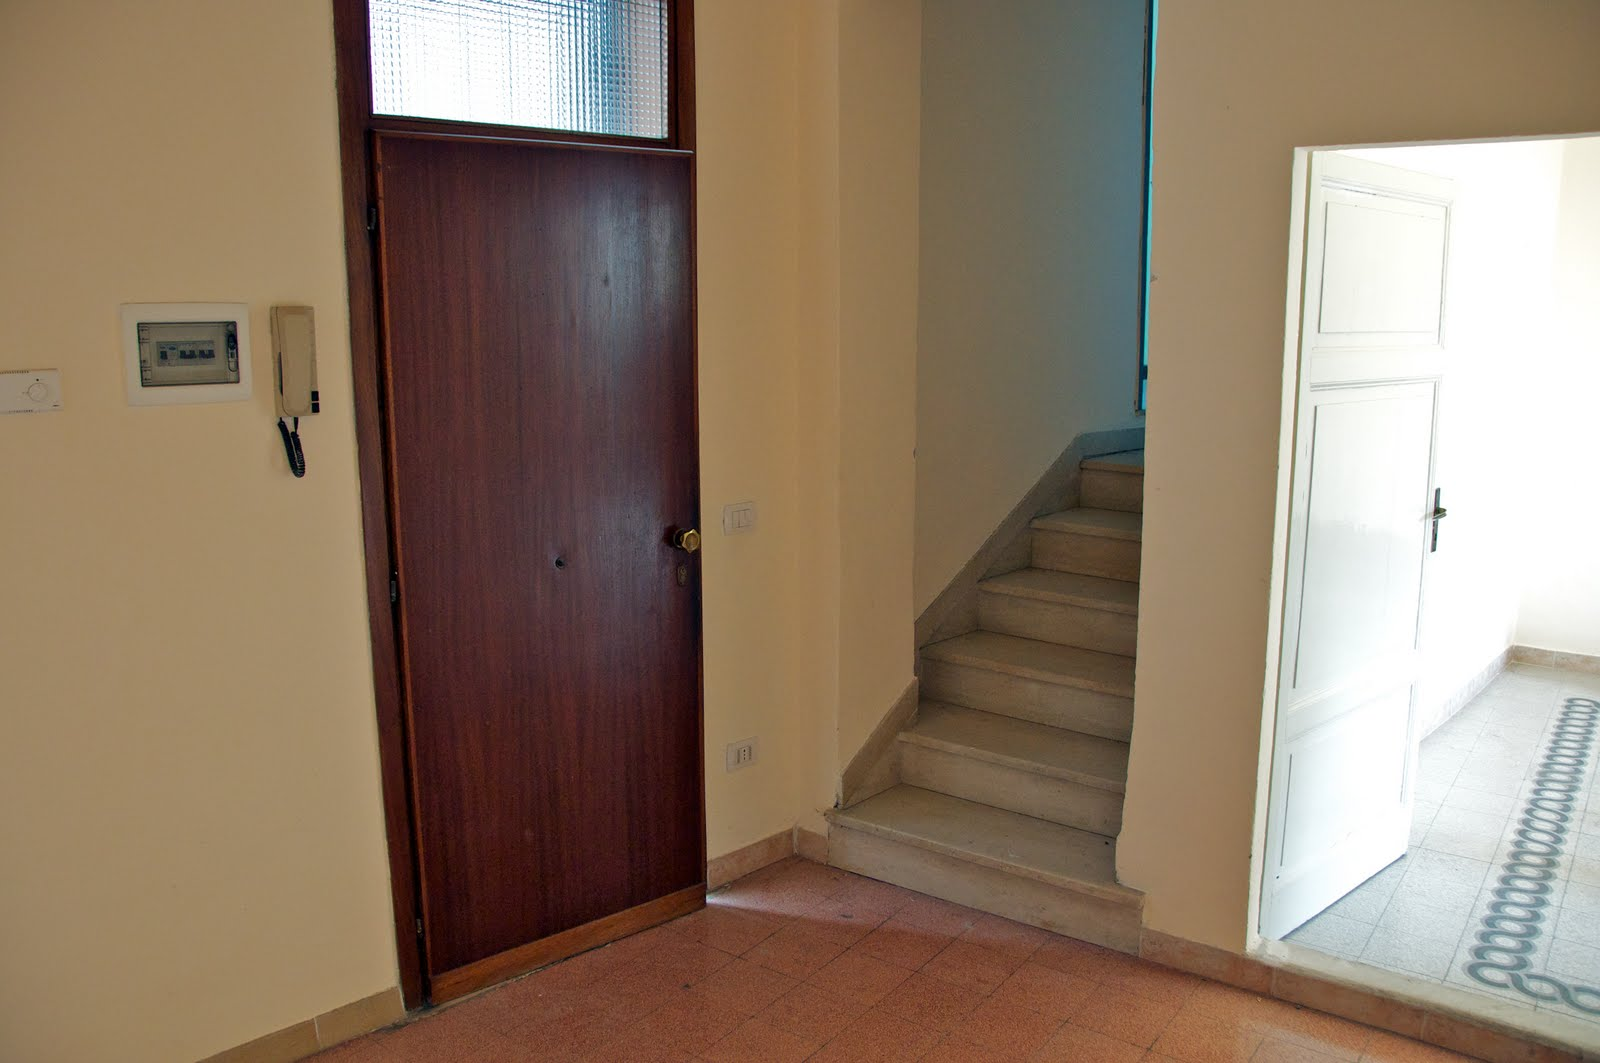 Americans in umbria buying apartment number 2 Entry to master bedroom